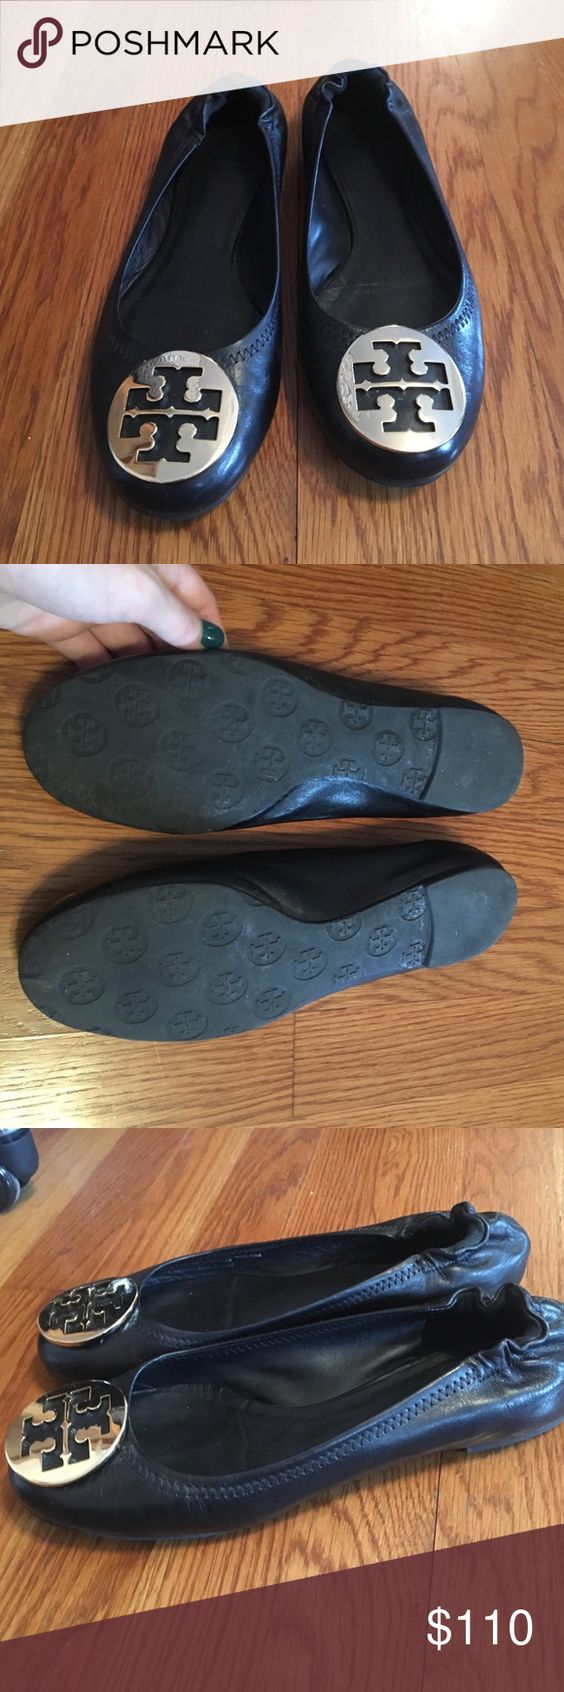 Tory Burch Flats Worn three times, really great condition! Tory Burch Shoes